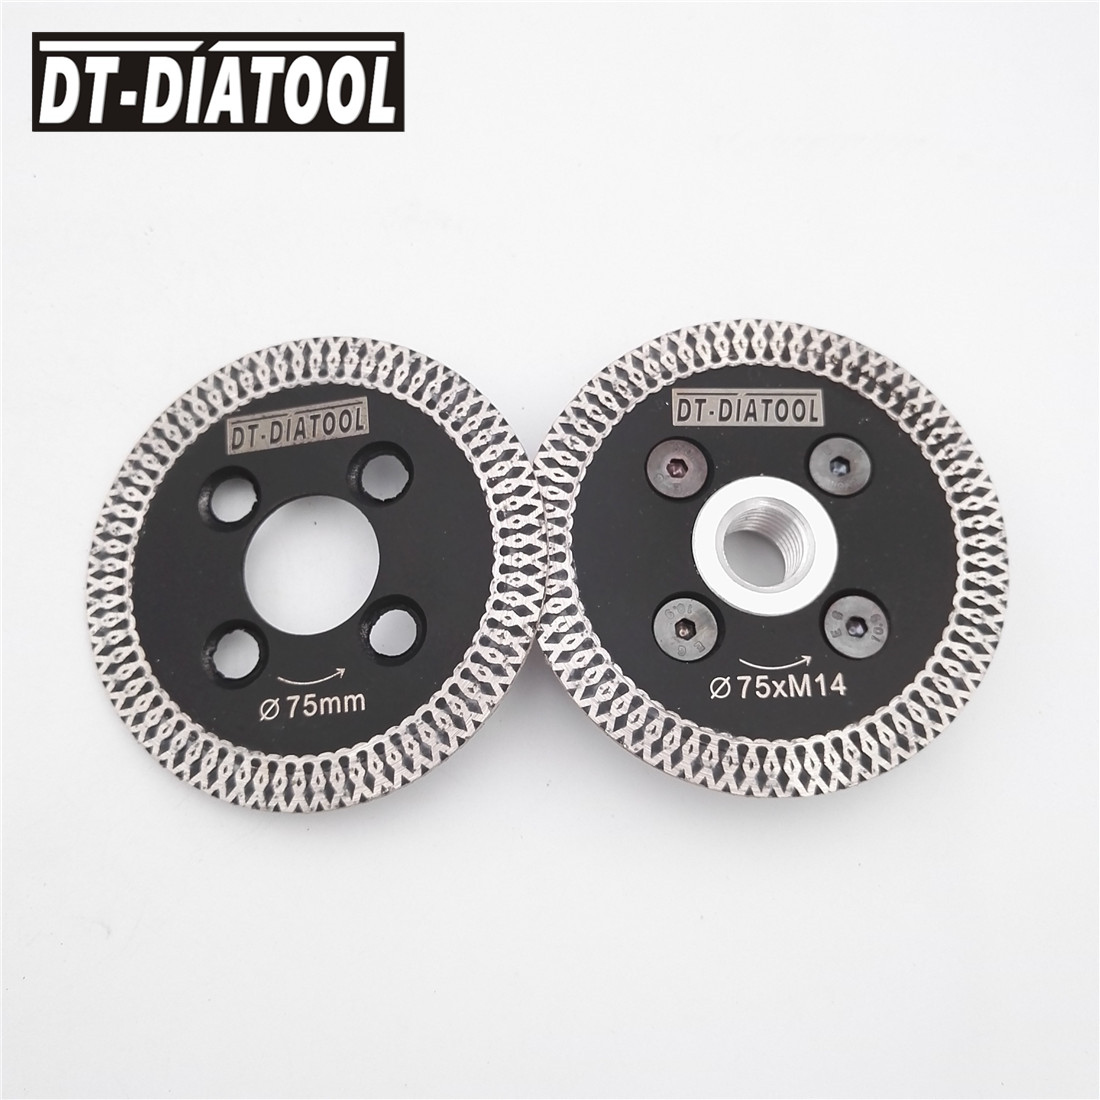 DT-DIATOOL 2pcs 75MM Hot pressed mesh turbo diamond saw blade 1pc removable M14 flange cutting carving disc for stone marbleDT-DIATOOL 2pcs 75MM Hot pressed mesh turbo diamond saw blade 1pc removable M14 flange cutting carving disc for stone marble